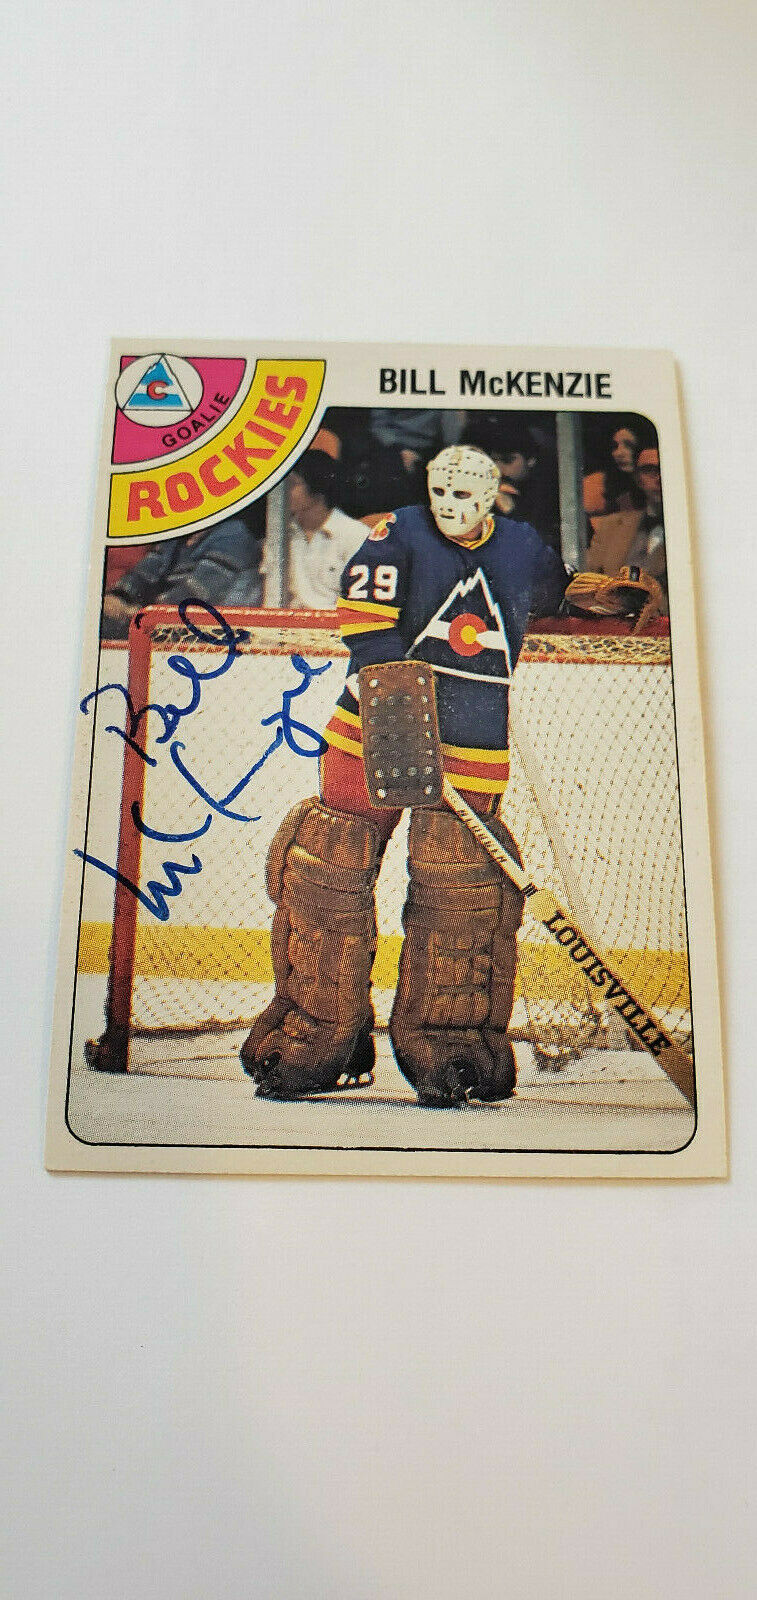 Primary image for 1978-79 OPC SIGNED CARD BILL MCKENZIE ROCKIES SCOUTS RED WINGS ENGLAND UK # 275